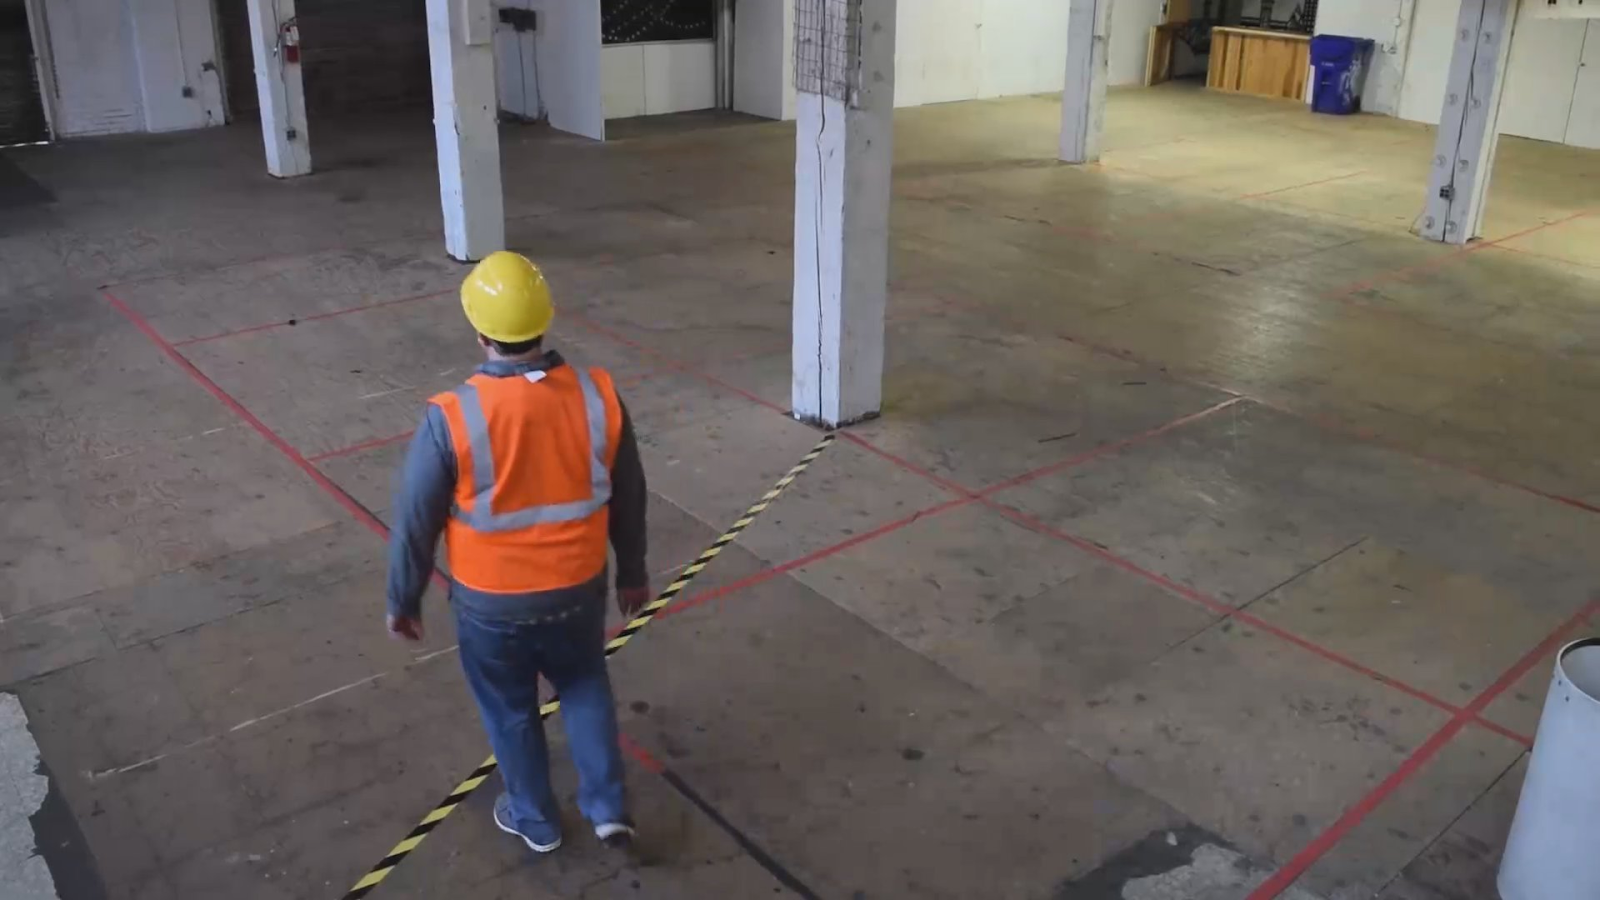 Image showing one camera snapshot captured with the media server, a worker walking around a restricted area.